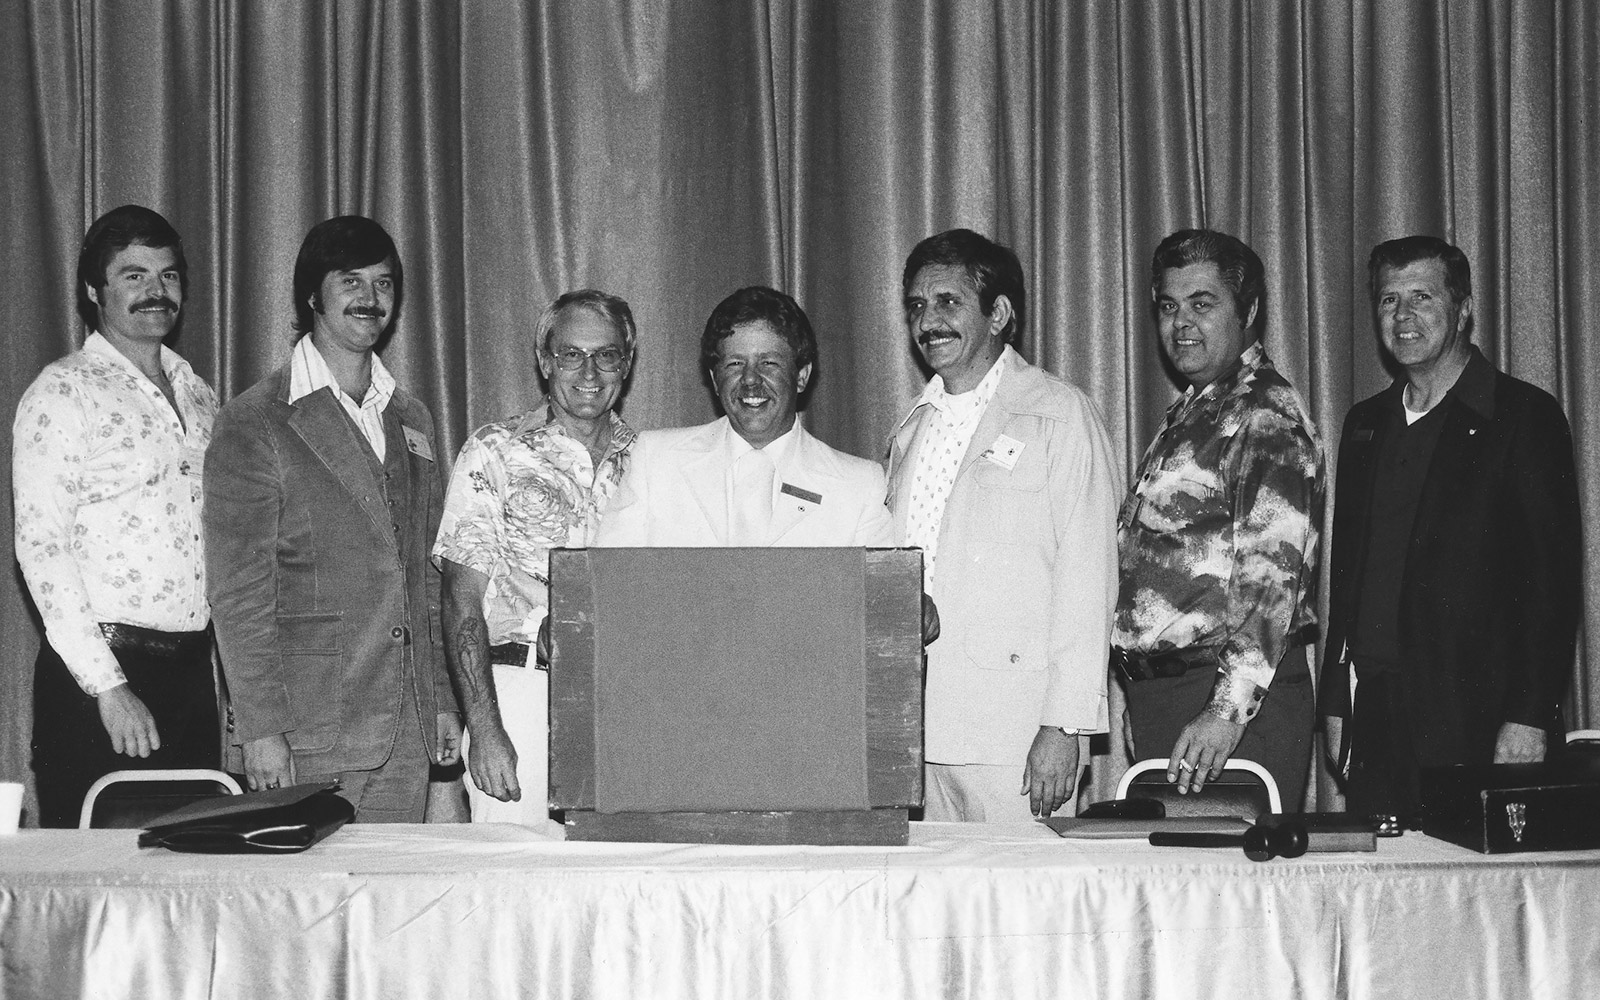 Federated Fire Fighters Executive Board, 1977. Paul Wallace at far right.